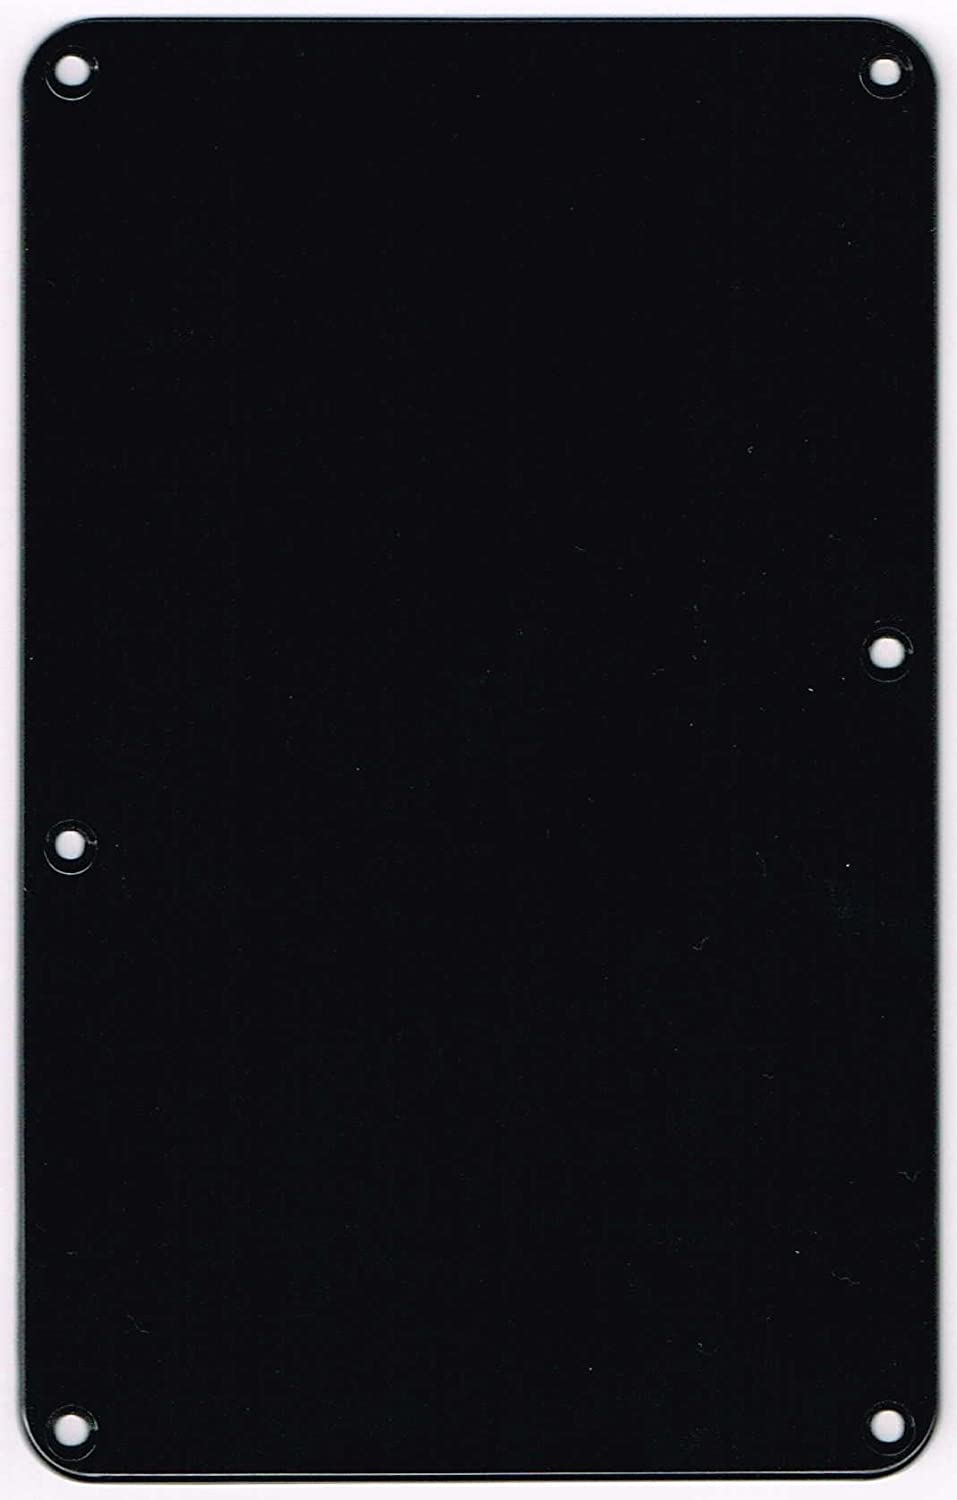 MADE IN JAPAN ST TremoloBackPlate No Hole Black